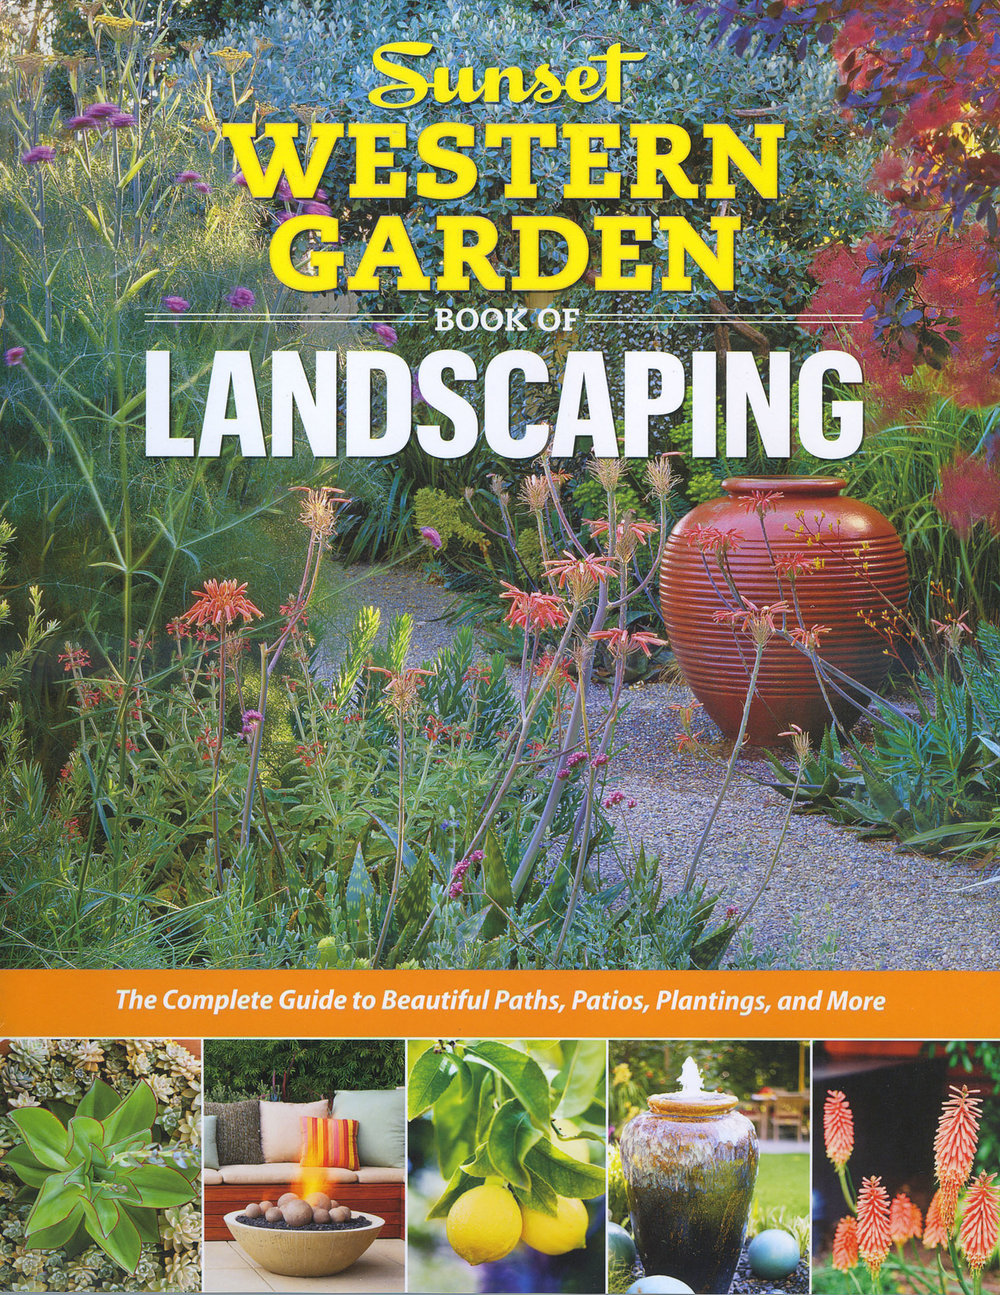 Sunset western garden book cover large.jpg